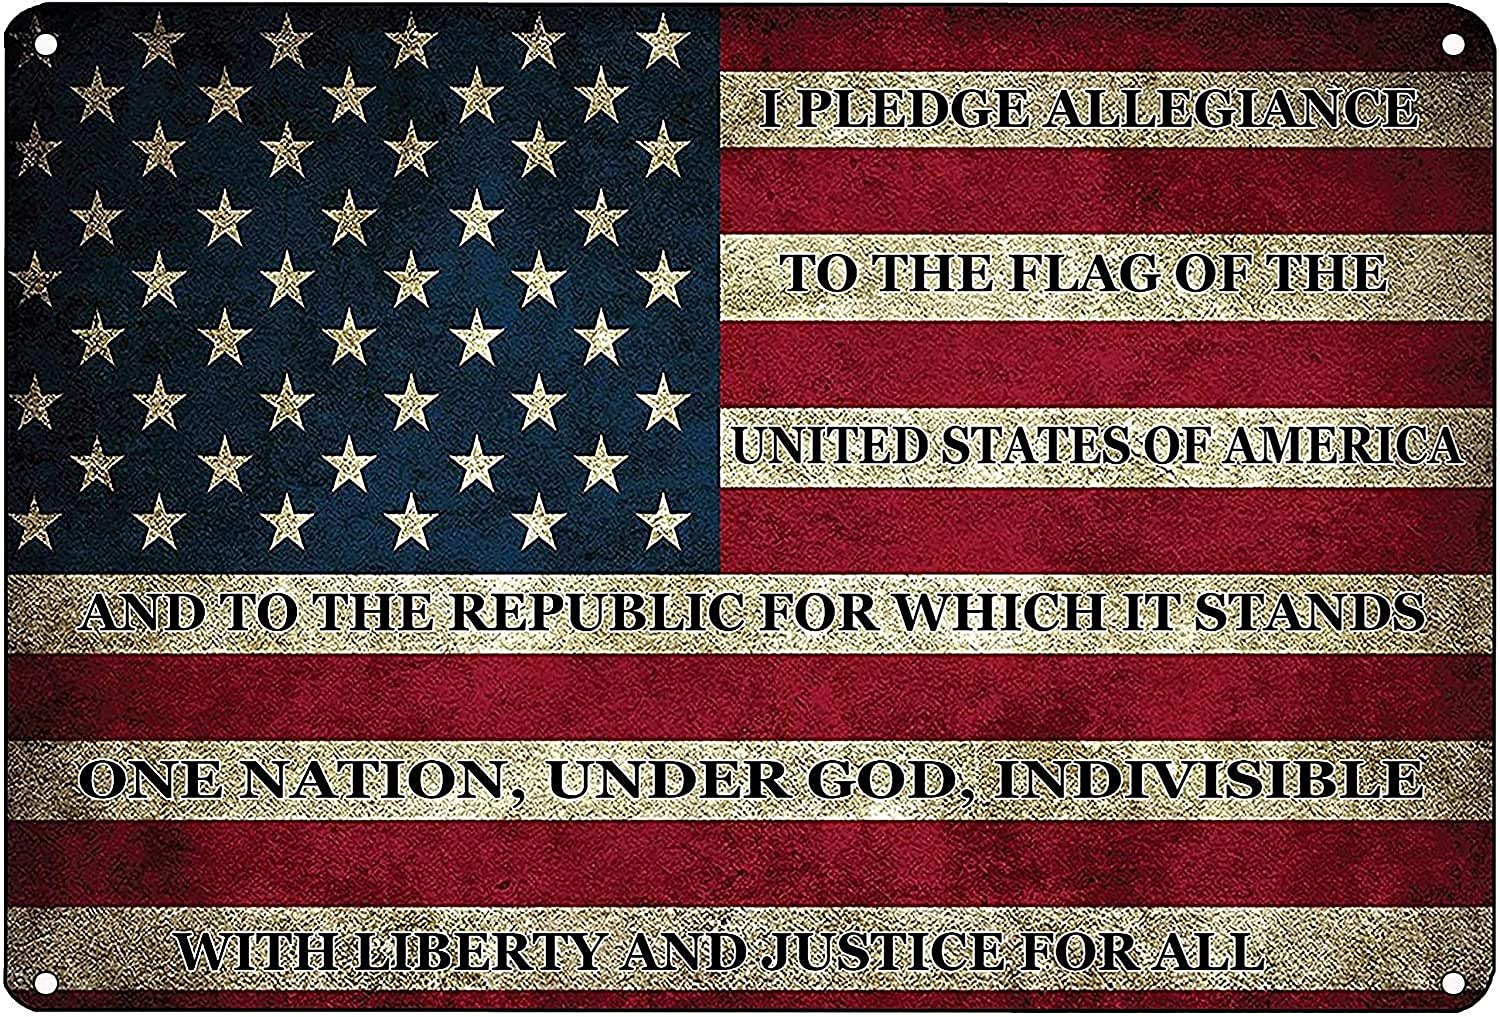 Cafini Retro Metal Sign Vintage I Pledge Allegiance to The Flag of The United States of America Sign for Plaque Poster Cafe Wall Decor Art Sign 8x12 INCH